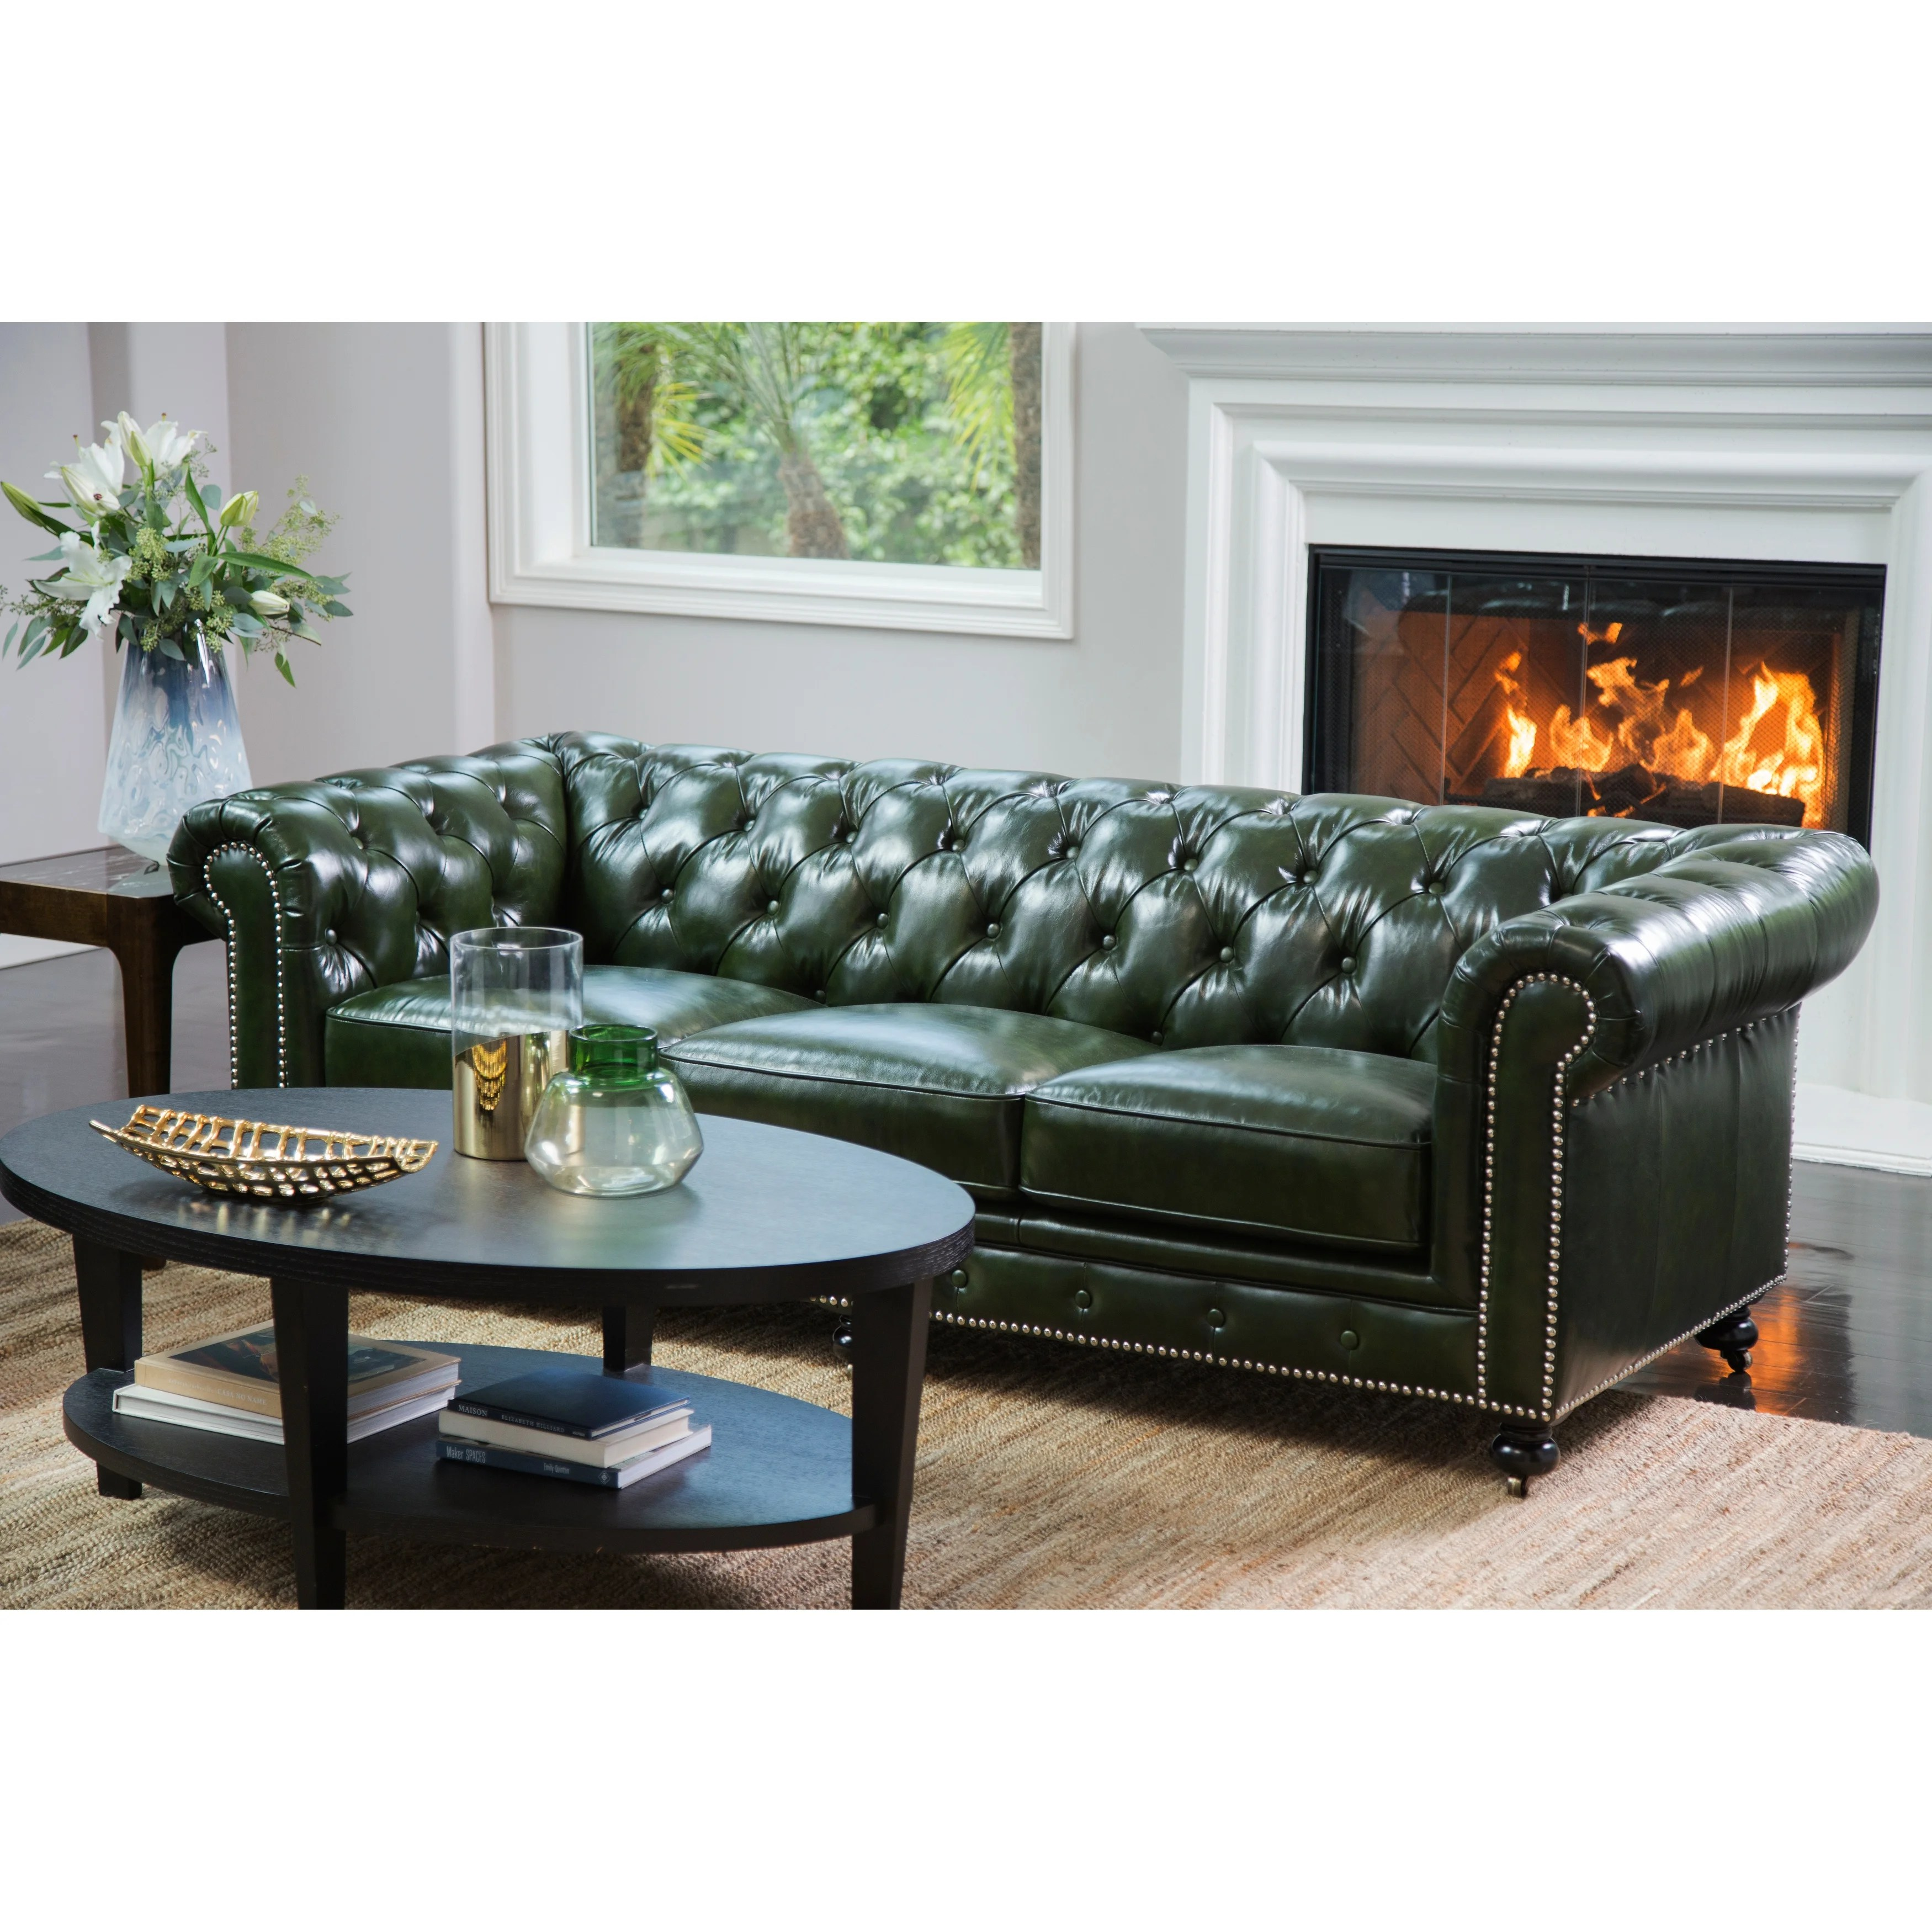 Abbyson Virginia Green Waxed Leather Chesterfield Sofa Overstock 18107892